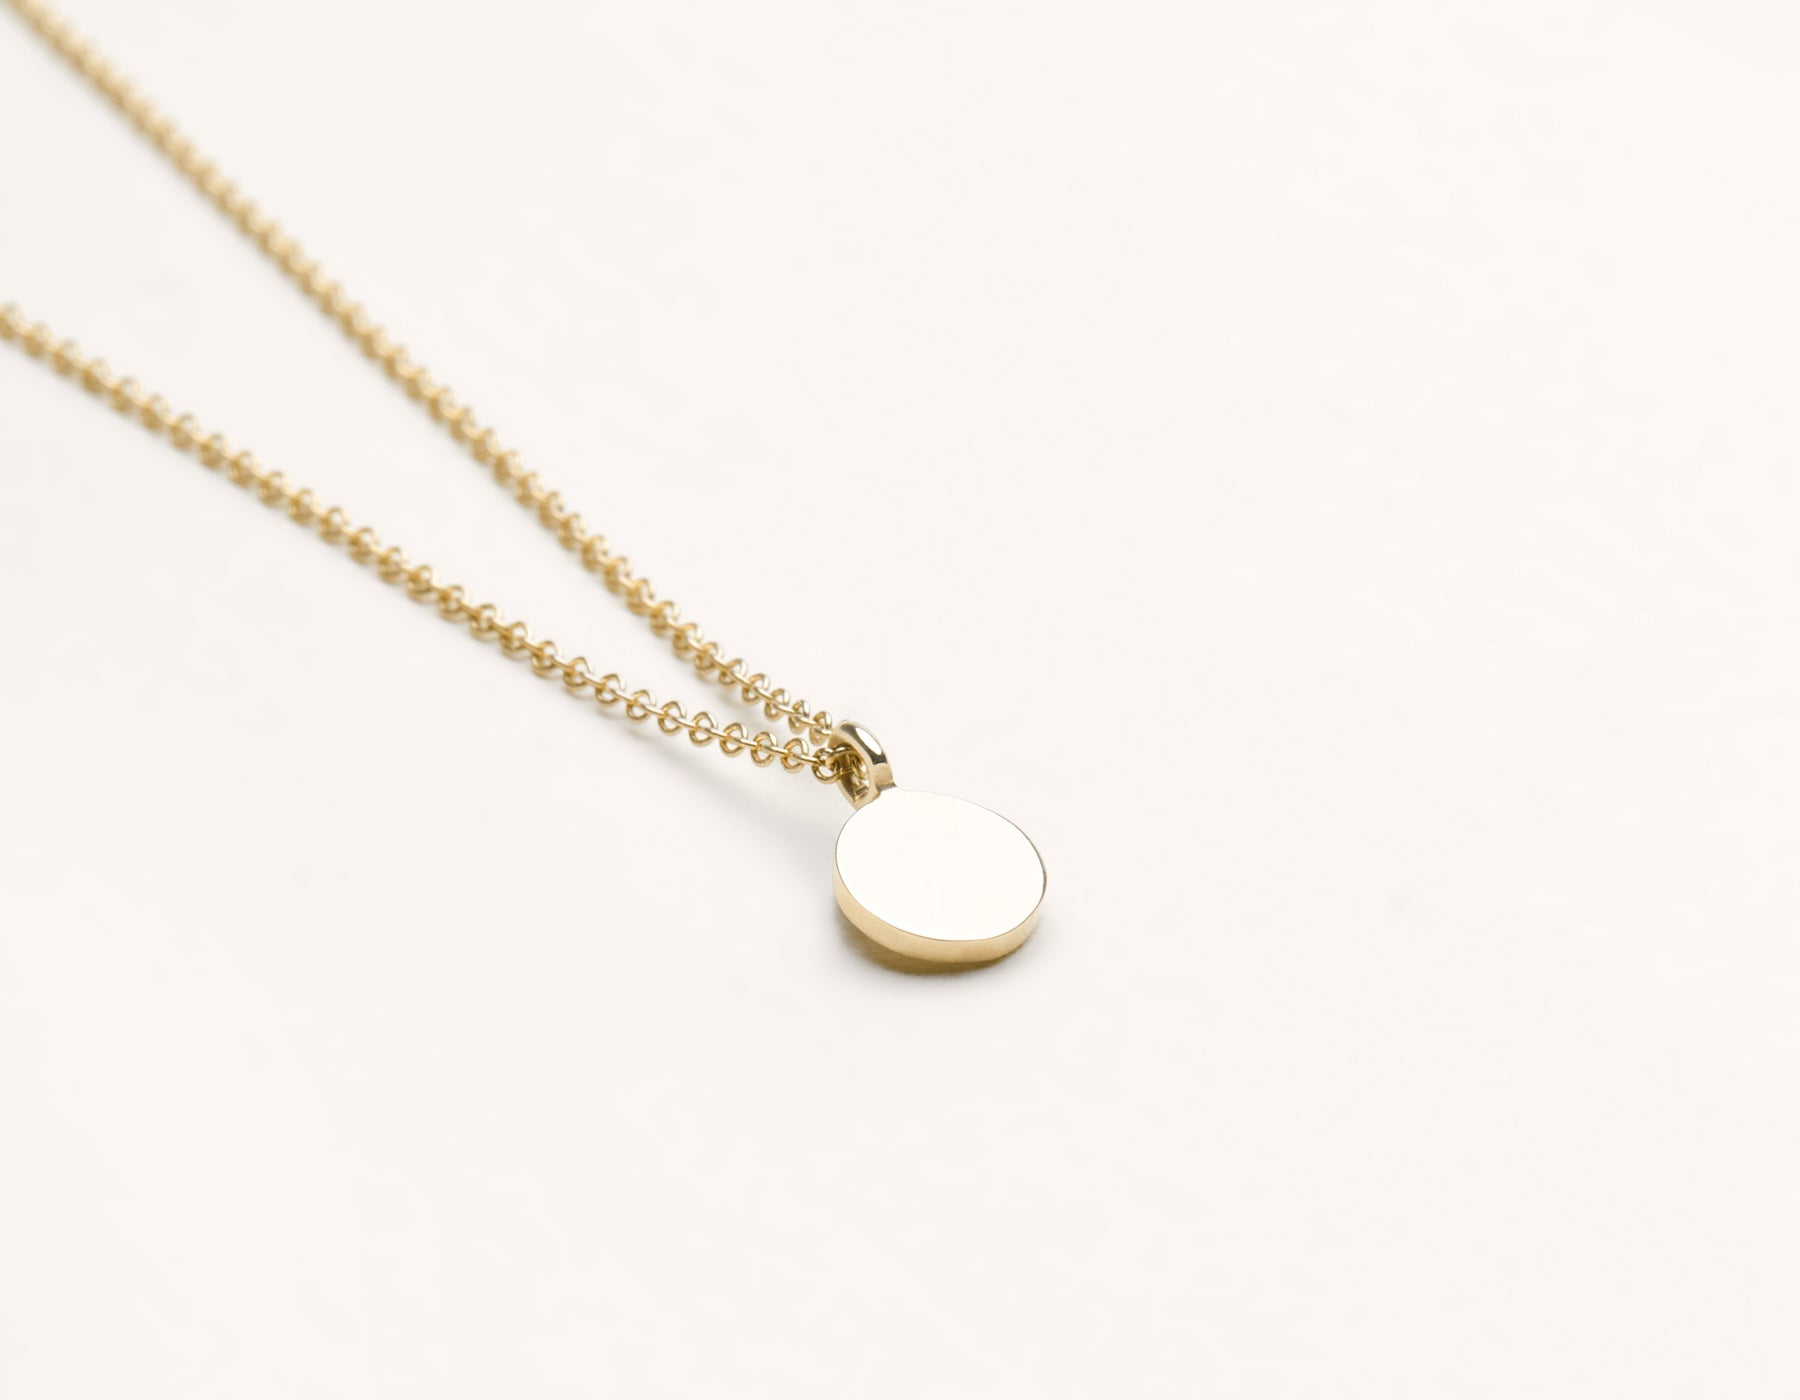 Personalized engraving Initial Necklace 14k solid gold small disk delicate chain Vrai & Oro, 14K Yellow Gold